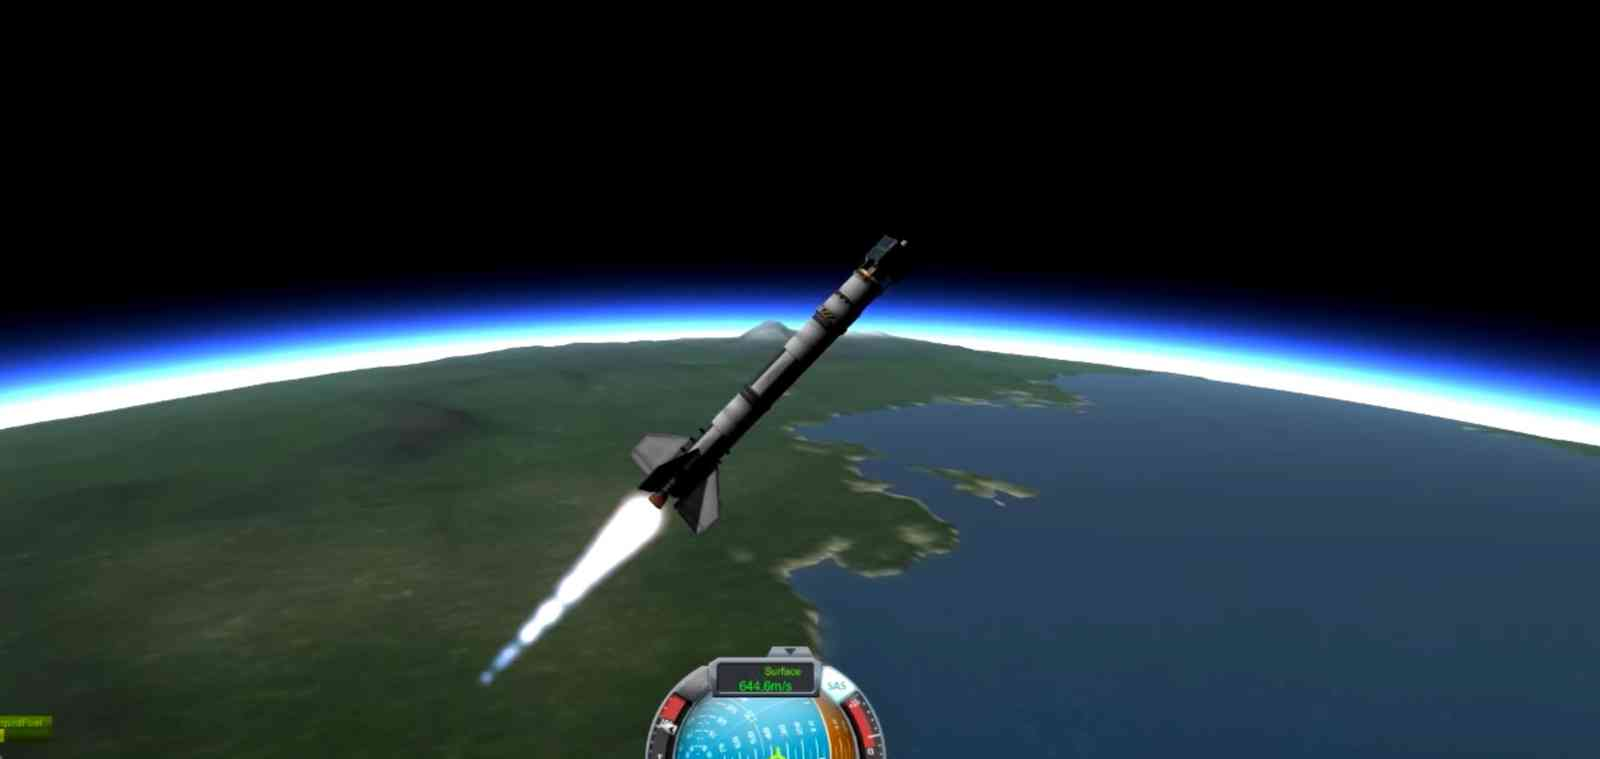 Take A Vacation To Mars Or An Intro Rocket Science Iron Man Suit Diagram Images Pictures Becuo Kerbal Space Program Launch